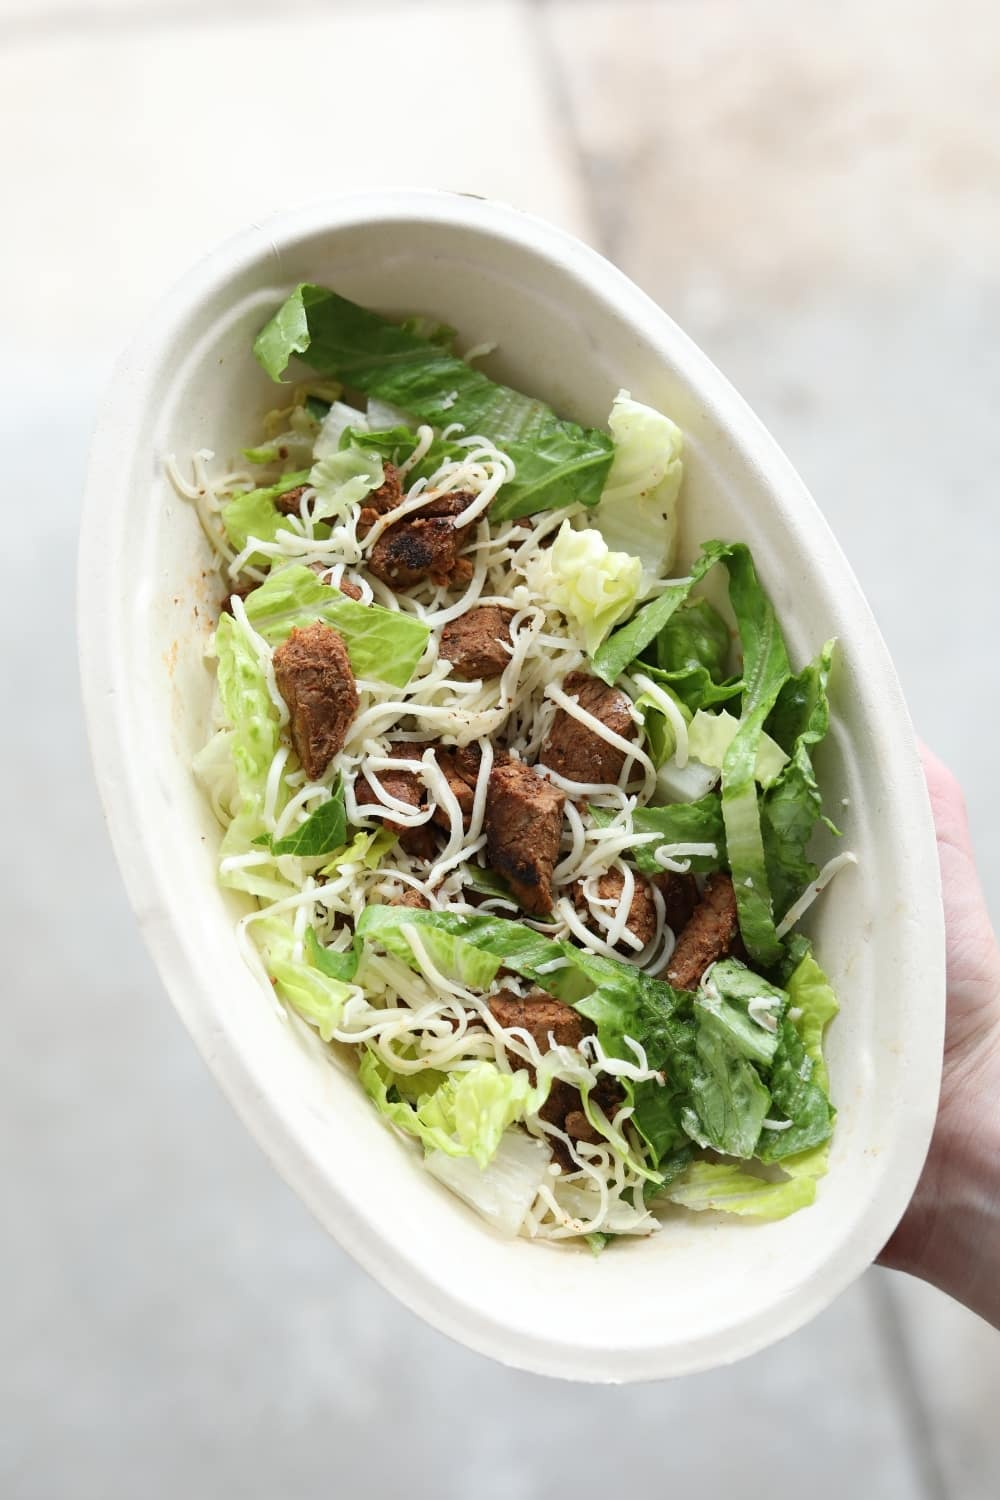 A hand holding a keto chipotle salad bowl with steak, lettuce, and shredded cheese.